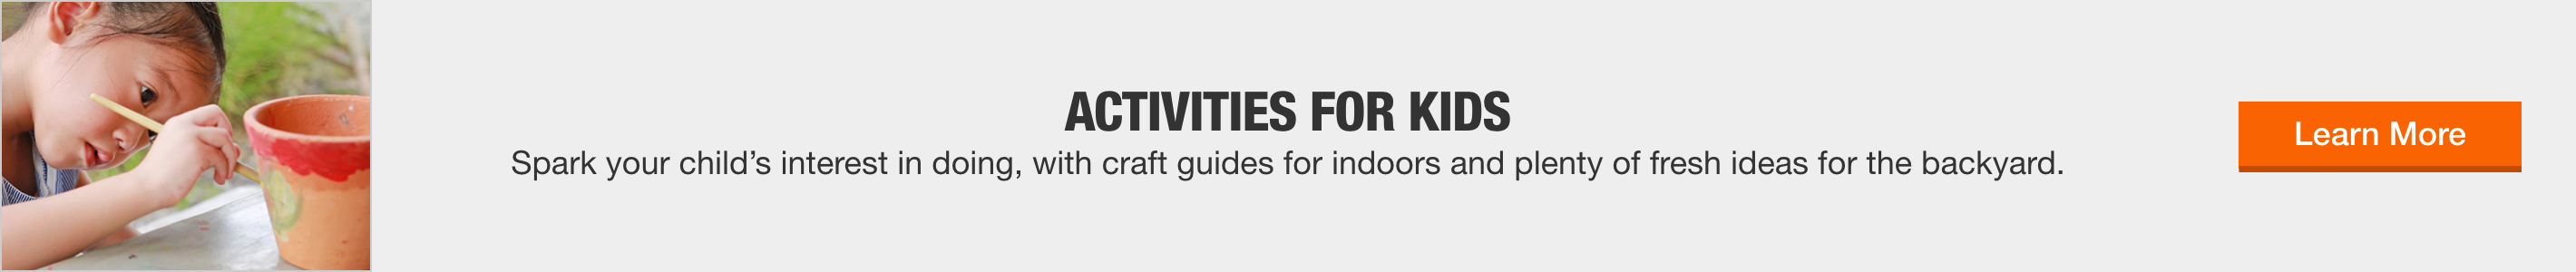 activities for kids - Spark your child's interest in doing, with craft guides for indoors and plenty of fresh ideas for the backyard. - learn more